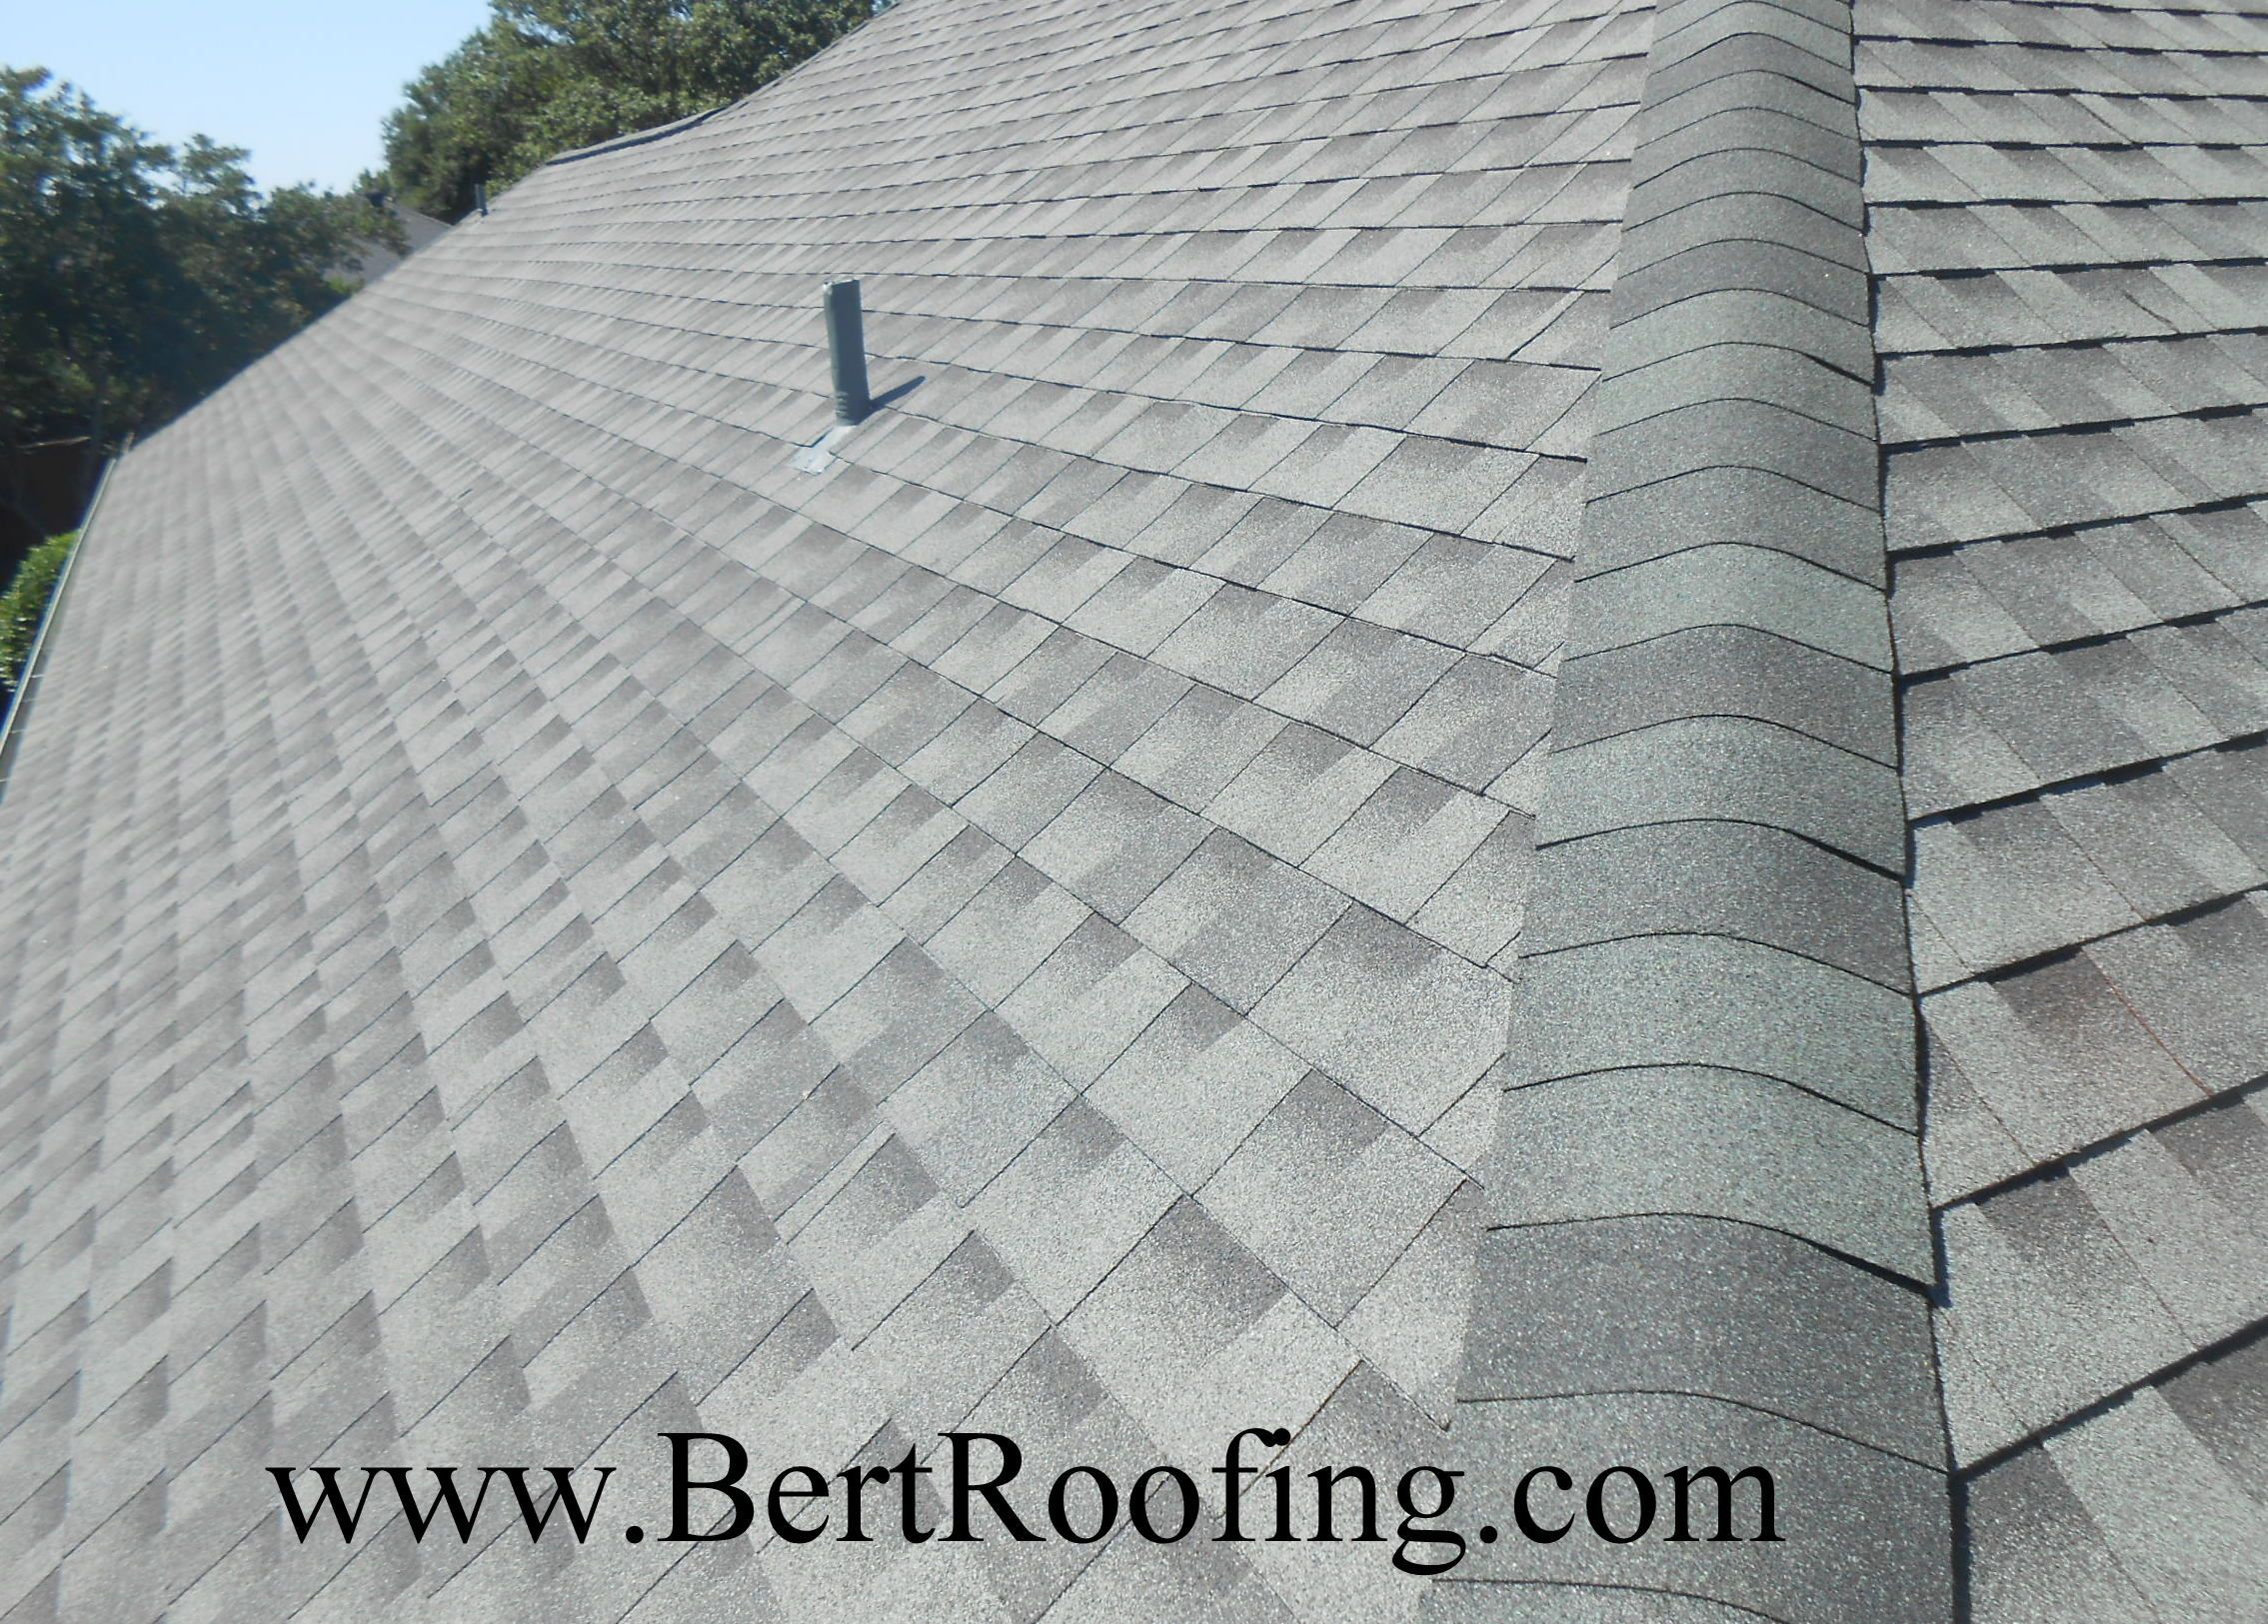 Gaf Armorshield Ii Class 4 Impact Resistant Composition Shingle Color Slate Installed By Bert Roofing Inc O Roofing Roofing Contractors Shingling